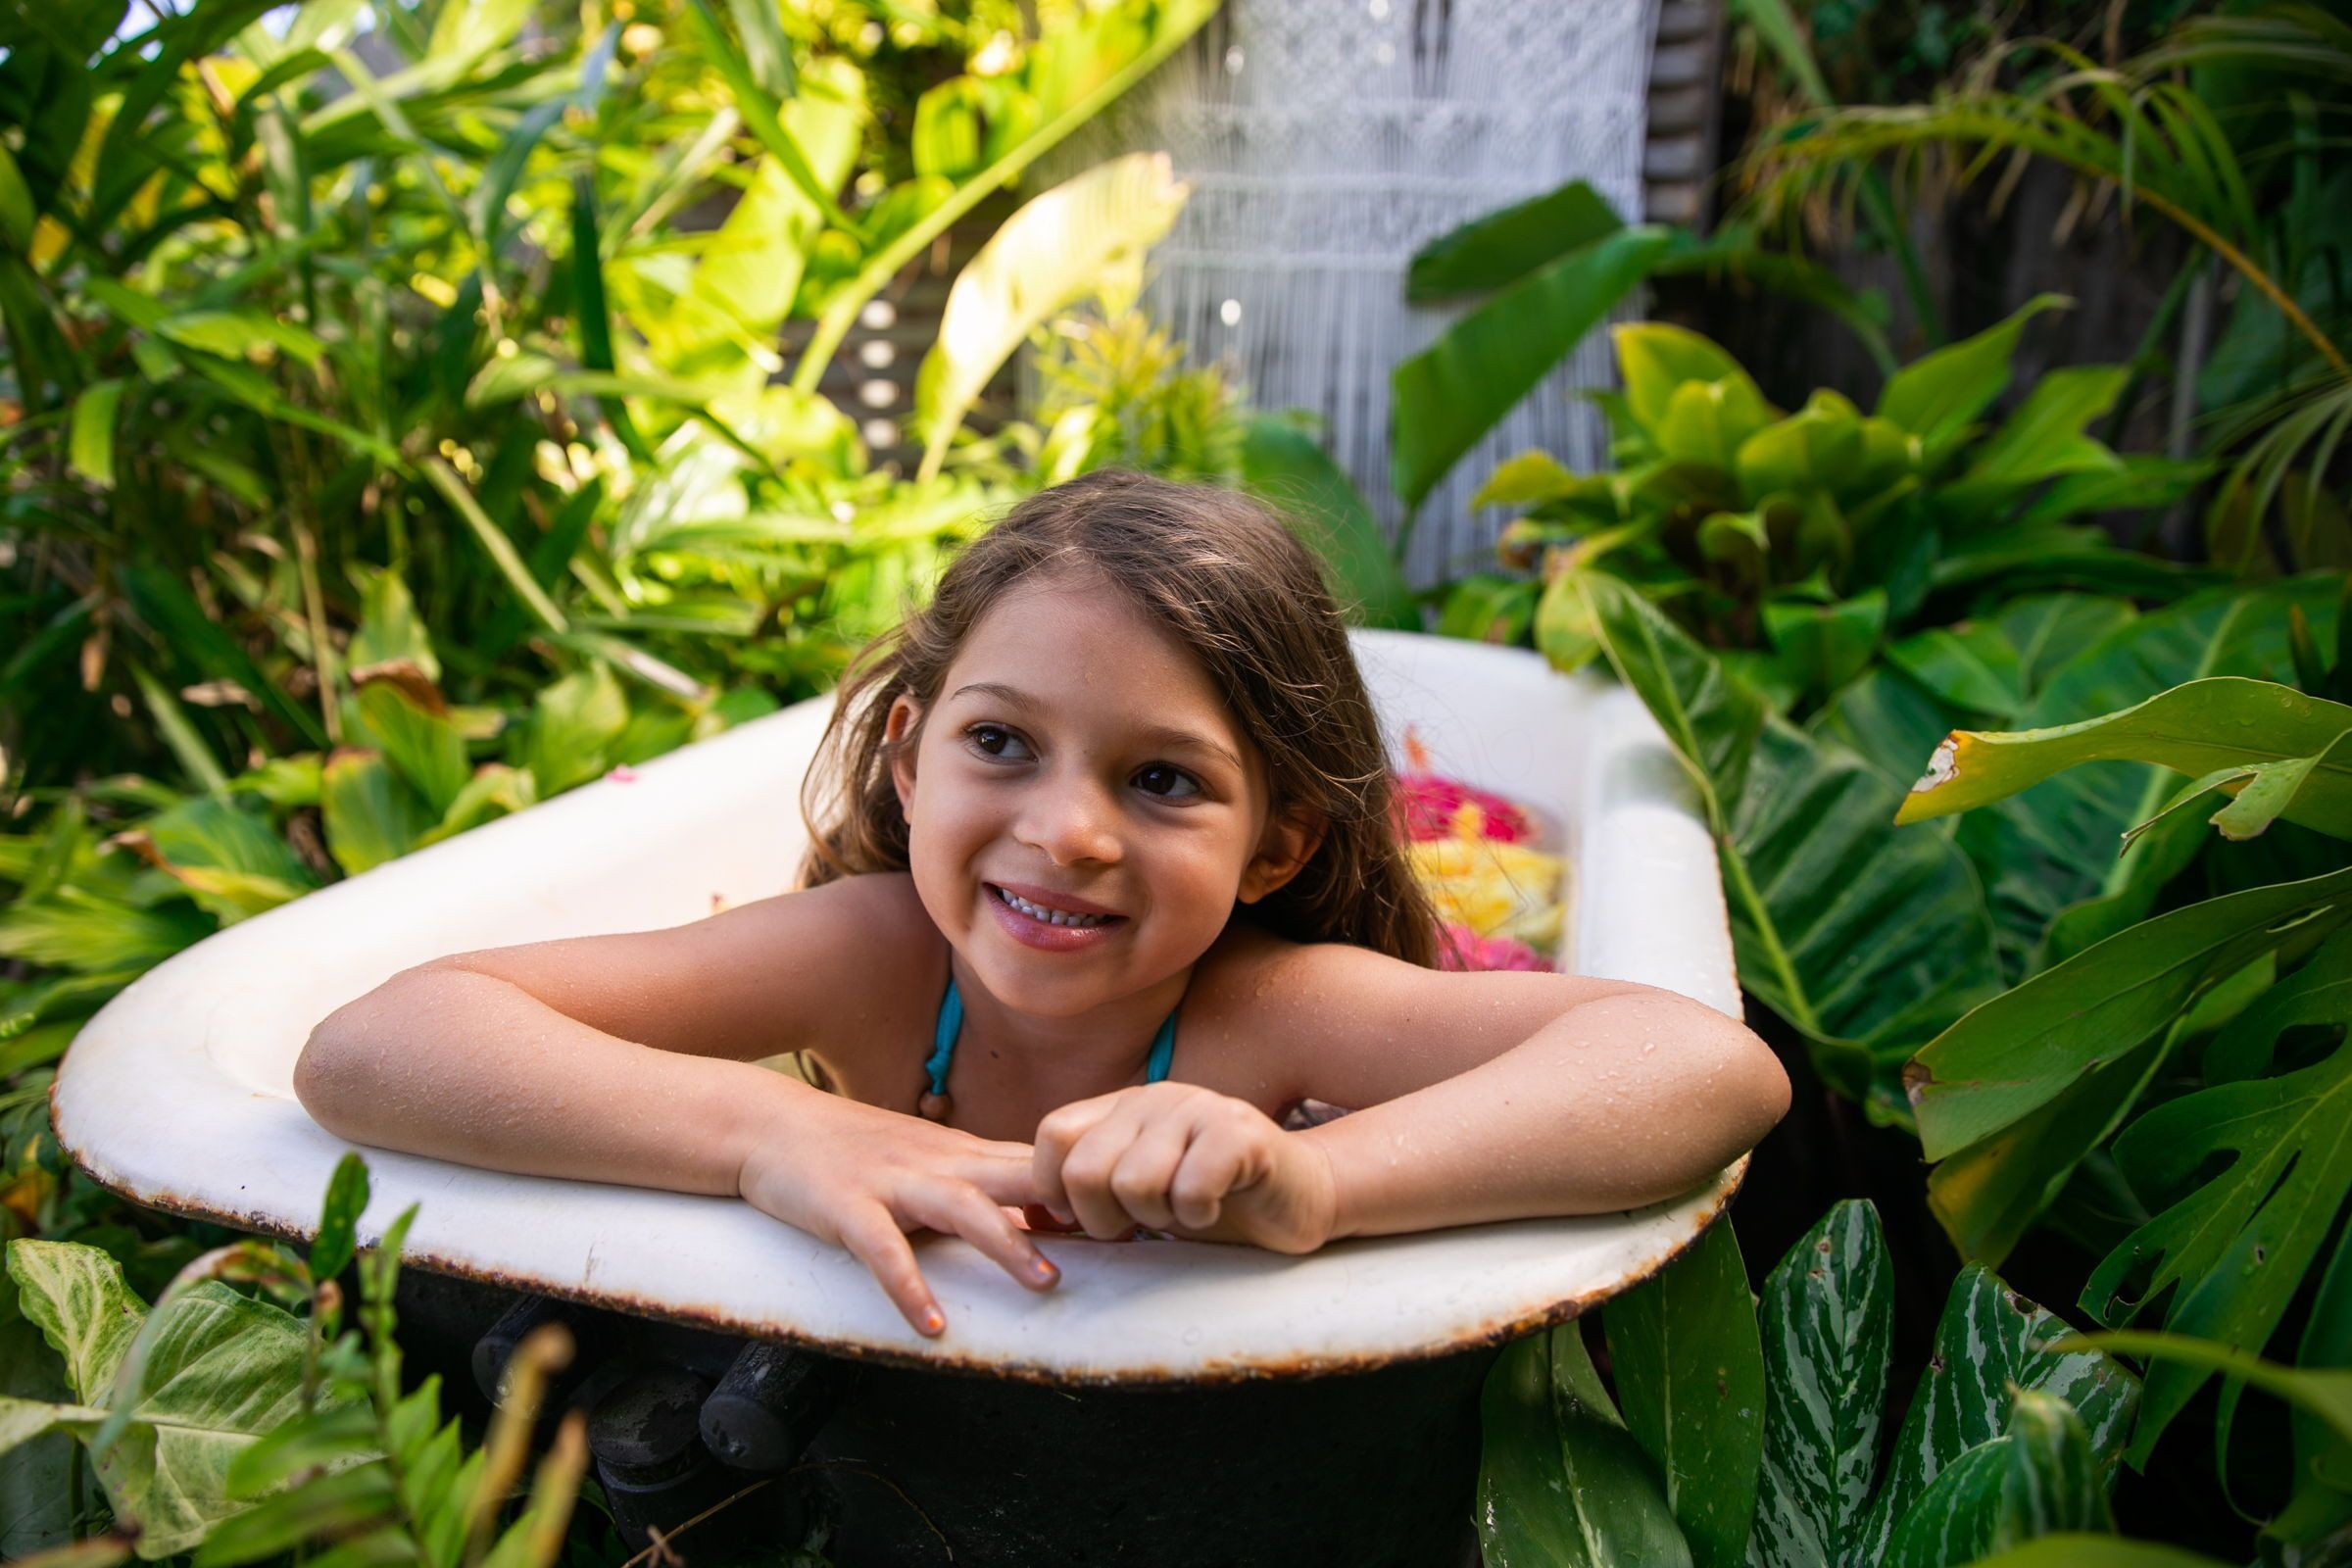 floral tub hibiscus tub flowers tropical flowers floral bath tropical bath hibiscus flowers mommy and me mommy and me milk bath mommy and me floral tub Storm Pierre Photography Hibiscus Love Tub #fallmilkbathbaby floral tub hibiscus tub flowers tropical flowers floral bath tropical bath hibiscus flowers mommy and me mommy and me milk bath mommy and me floral tub Storm Pierre Photography Hibiscus Love Tub #fallmilkbathbaby floral tub hibiscus tub flowers tropical flowers floral bath tropical bath #fallmilkbath